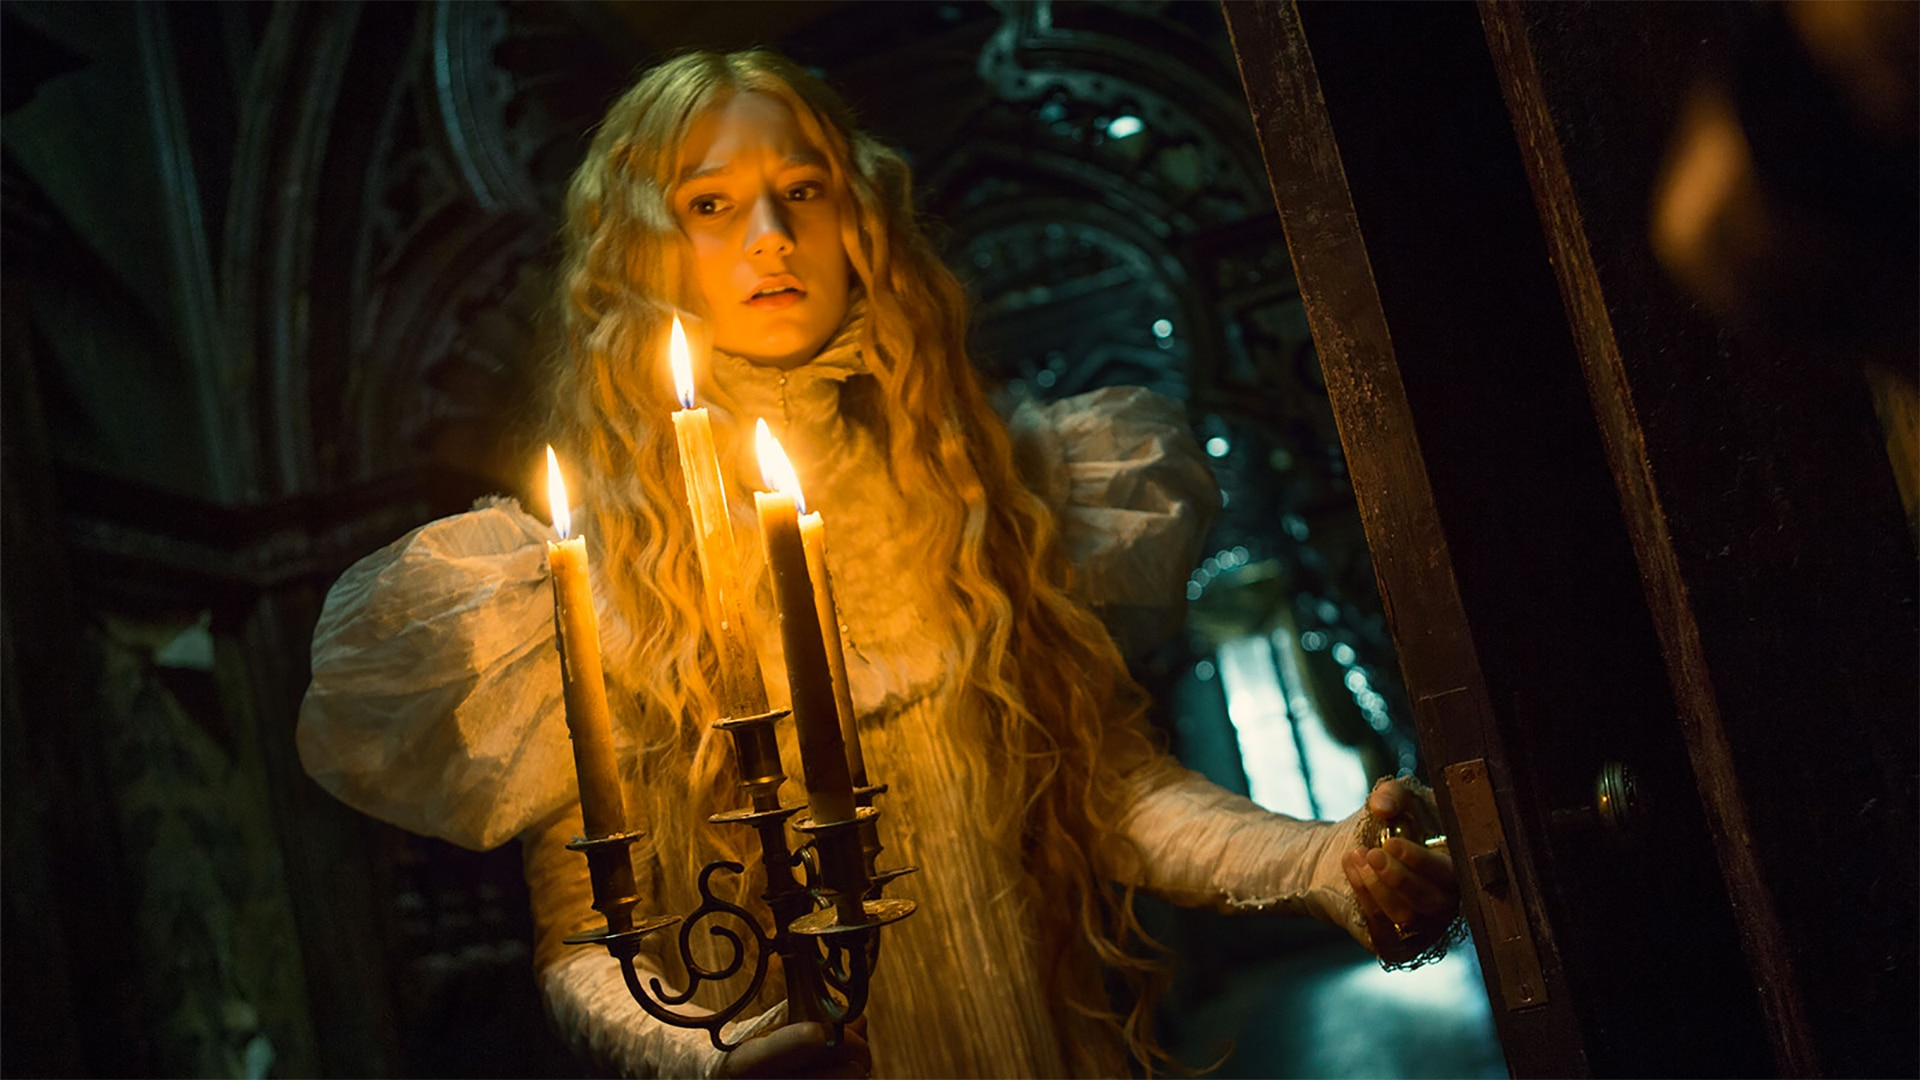 Hearts of Darkness on Film4